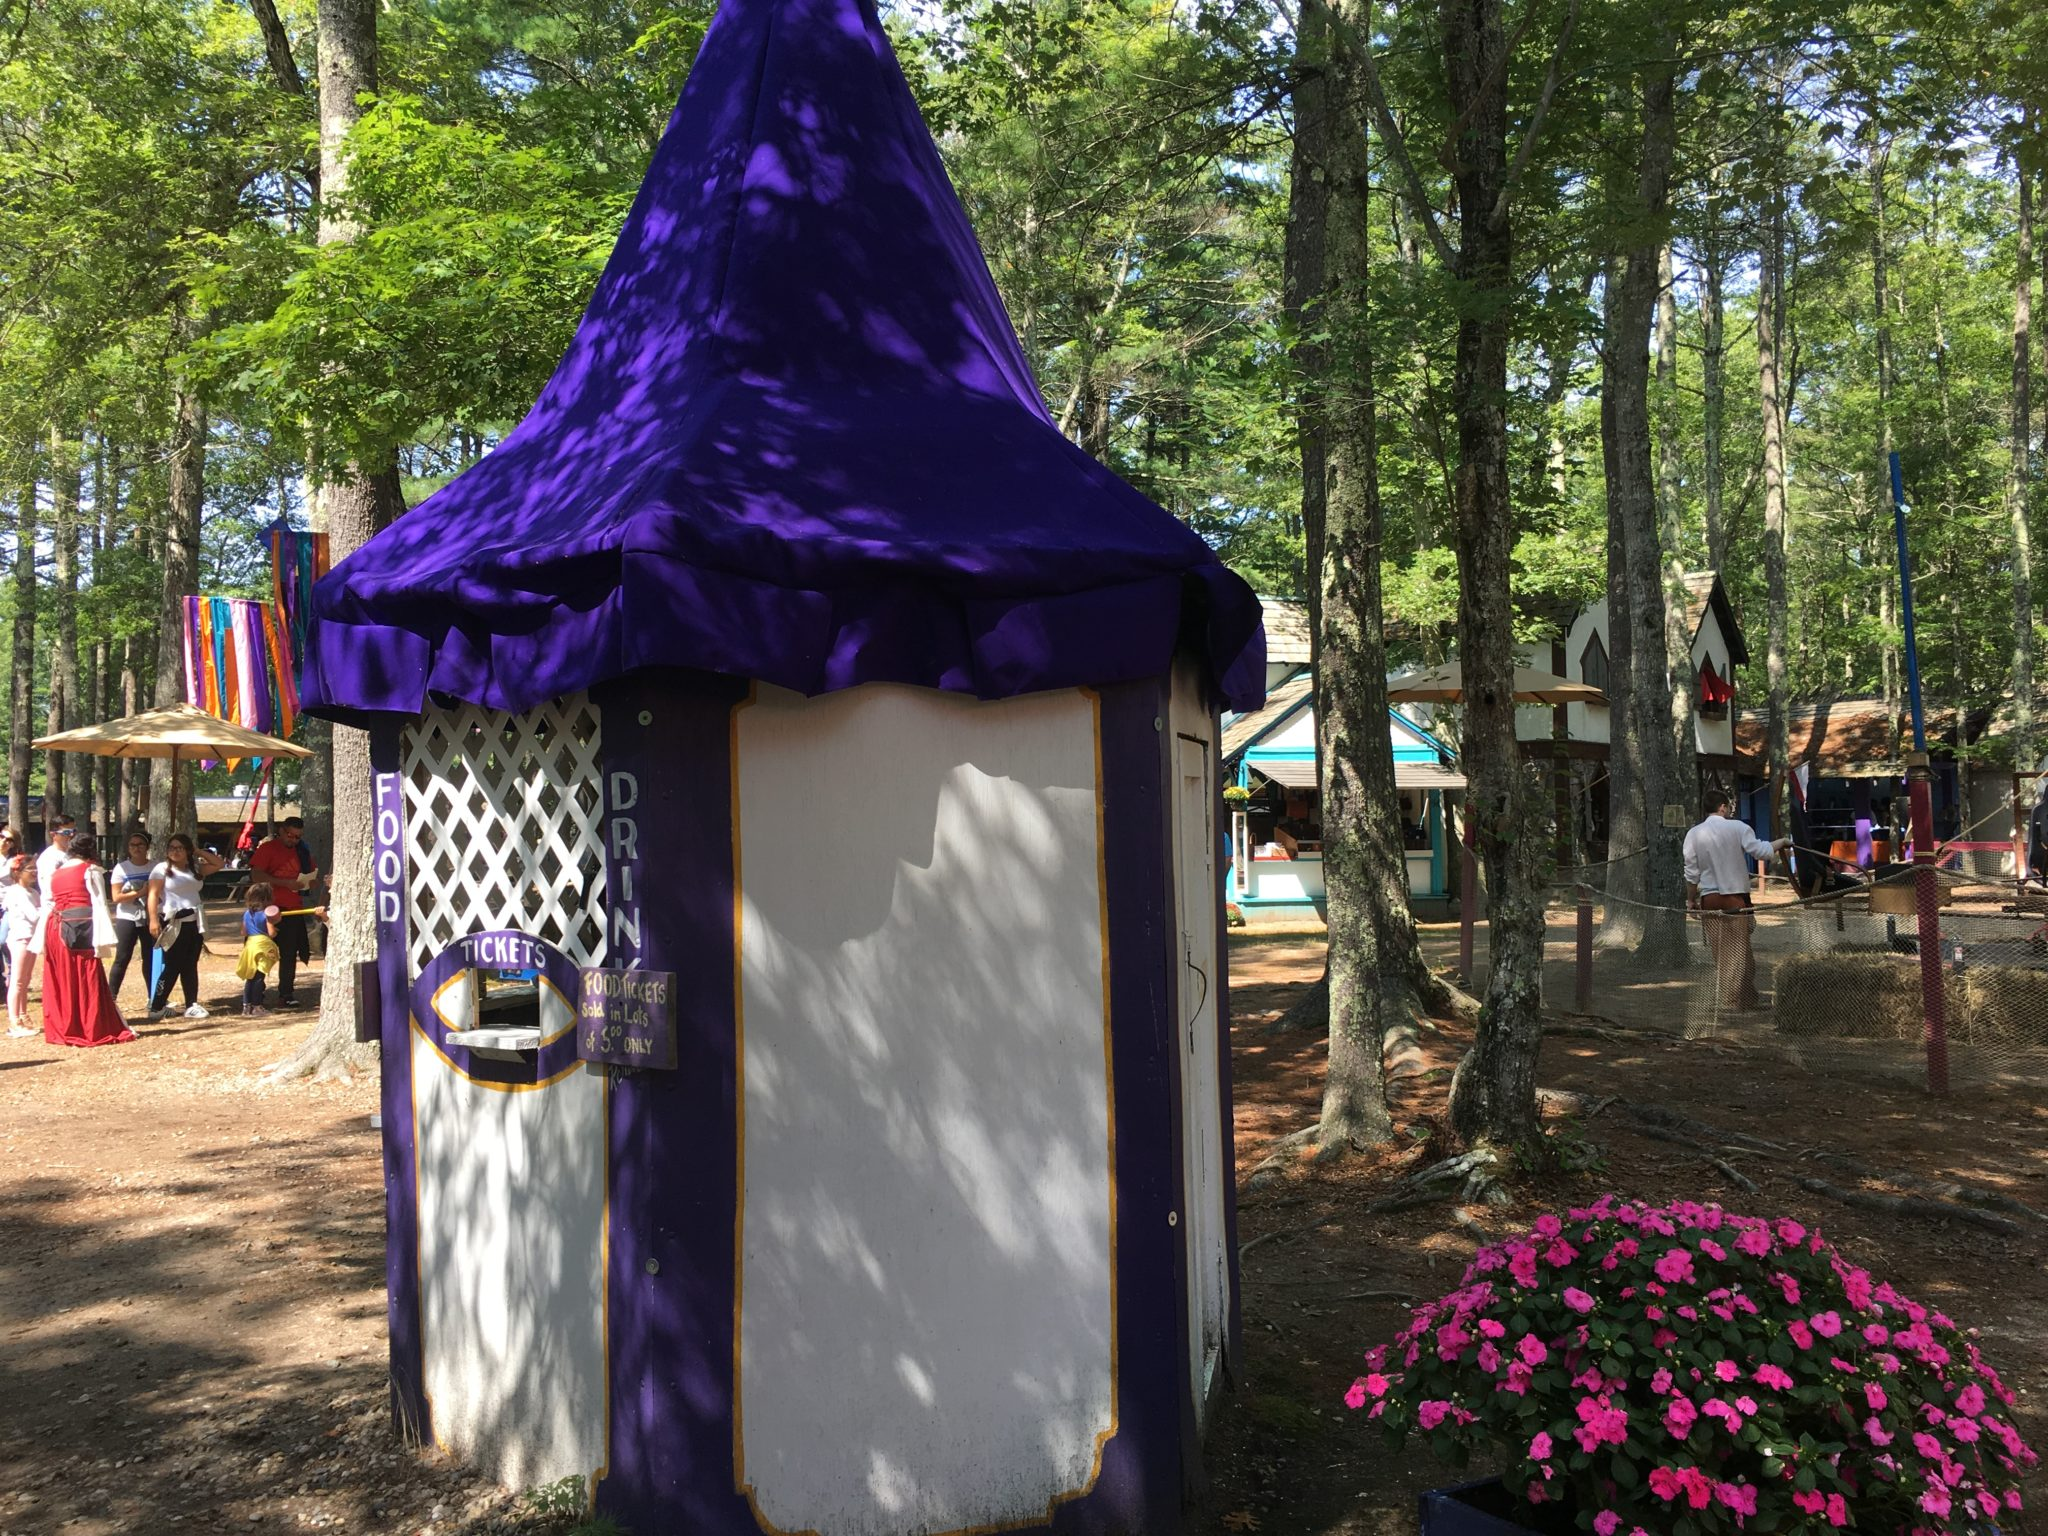 Purchase your food and beverage tickets at booths just like this at King Richard's Faire!